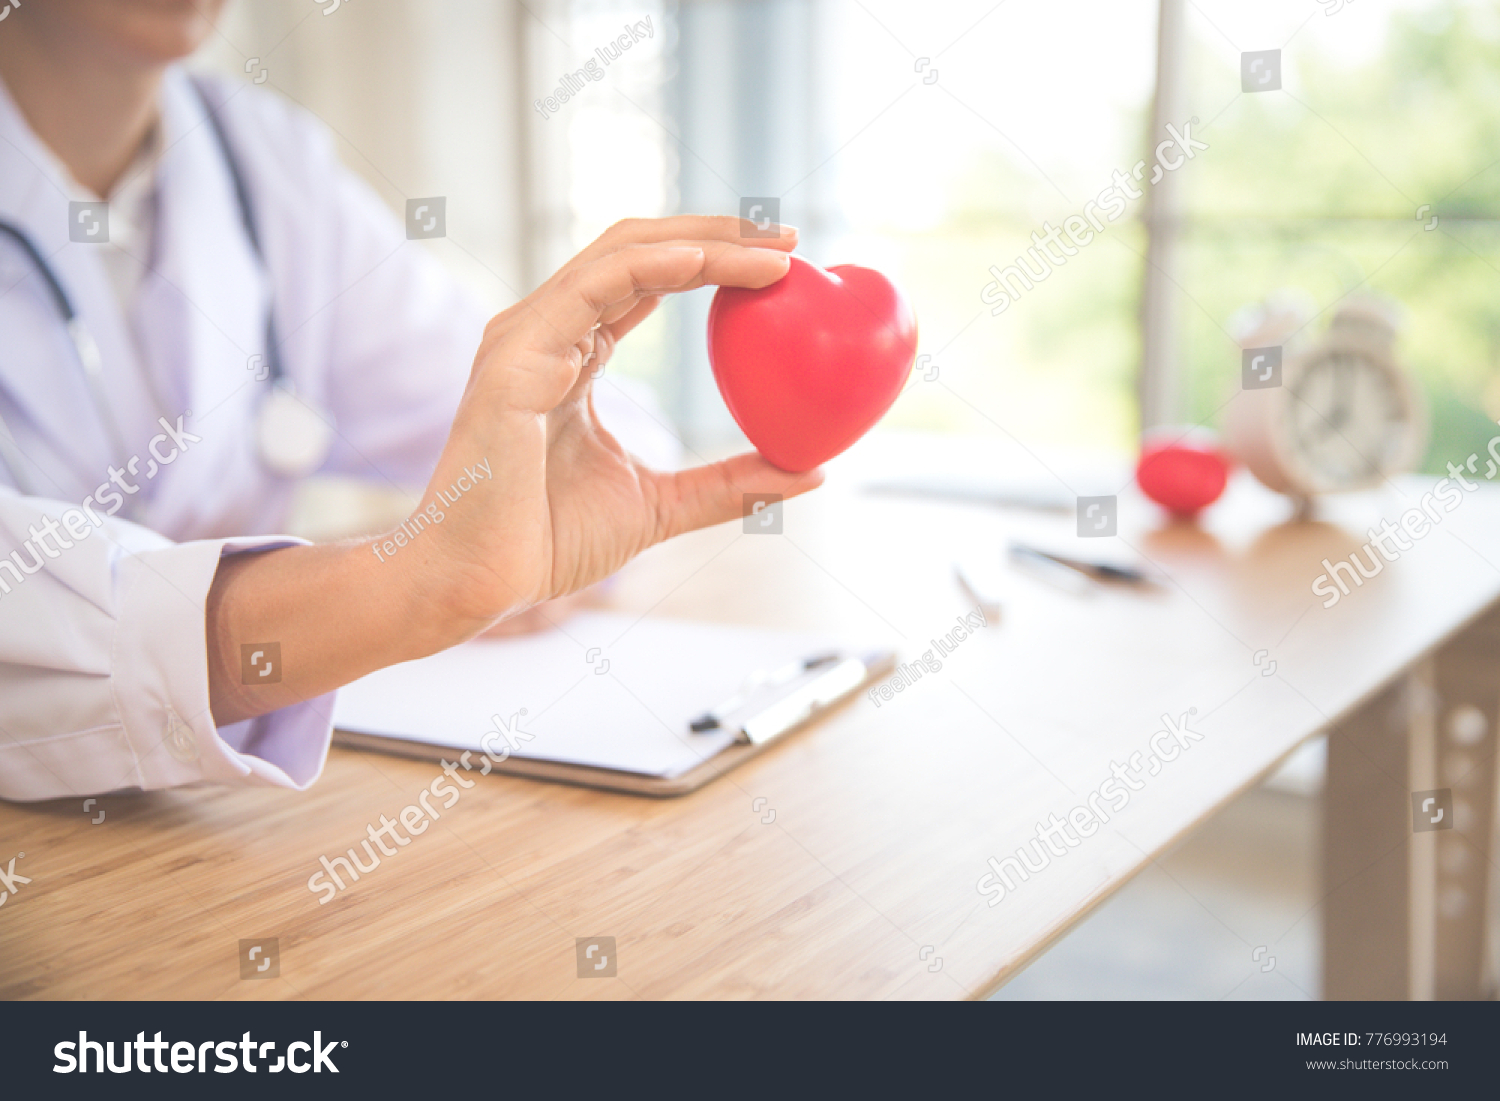 doctor holding and giving a red heart of love and care (this image for medical concept) #776993194